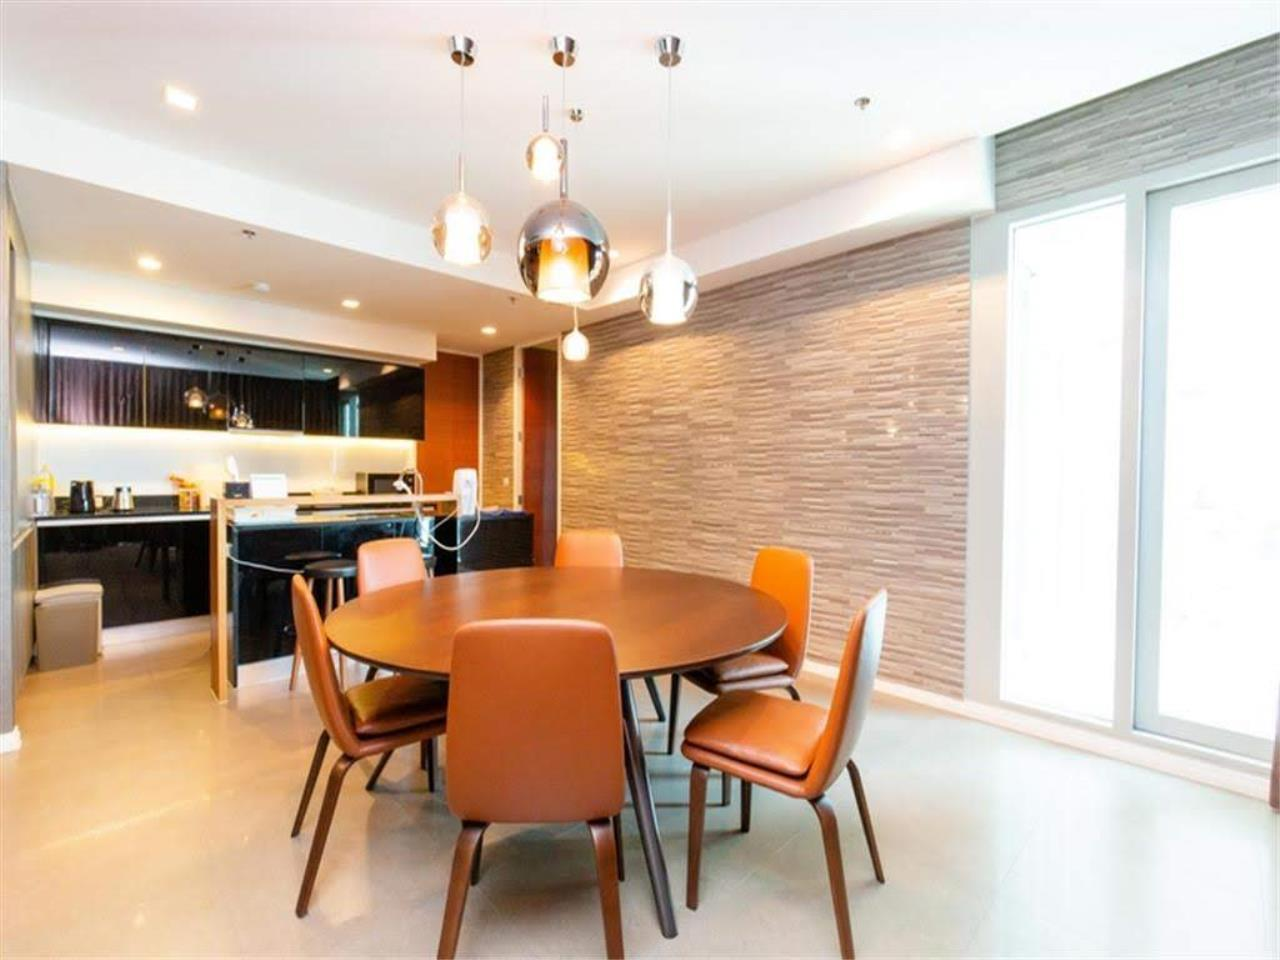 Bestbkkcondos Agency's The River - 233,8 sqm - For Sale : 52 000 000 THB - 3 Bedrooms 15